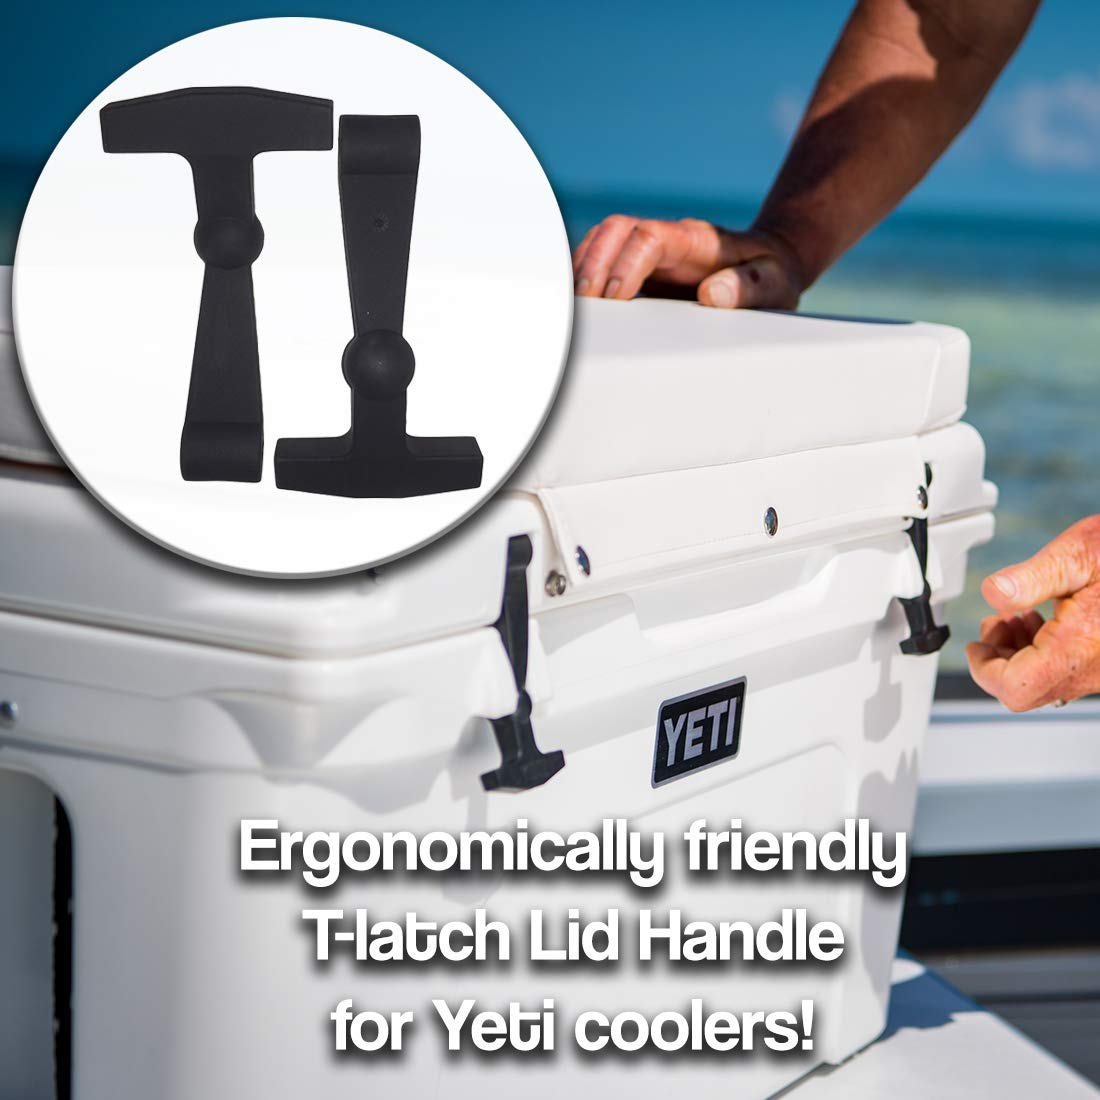 2-Pack of Replacement Lid Latches Compatible With Yeti Hard Coolers - Larger, More Durable, Ergonomically Improved Design That Fit on all Yeti Tundra and Roadie Coolers by BEAST Cooler Accessories (Image #5)